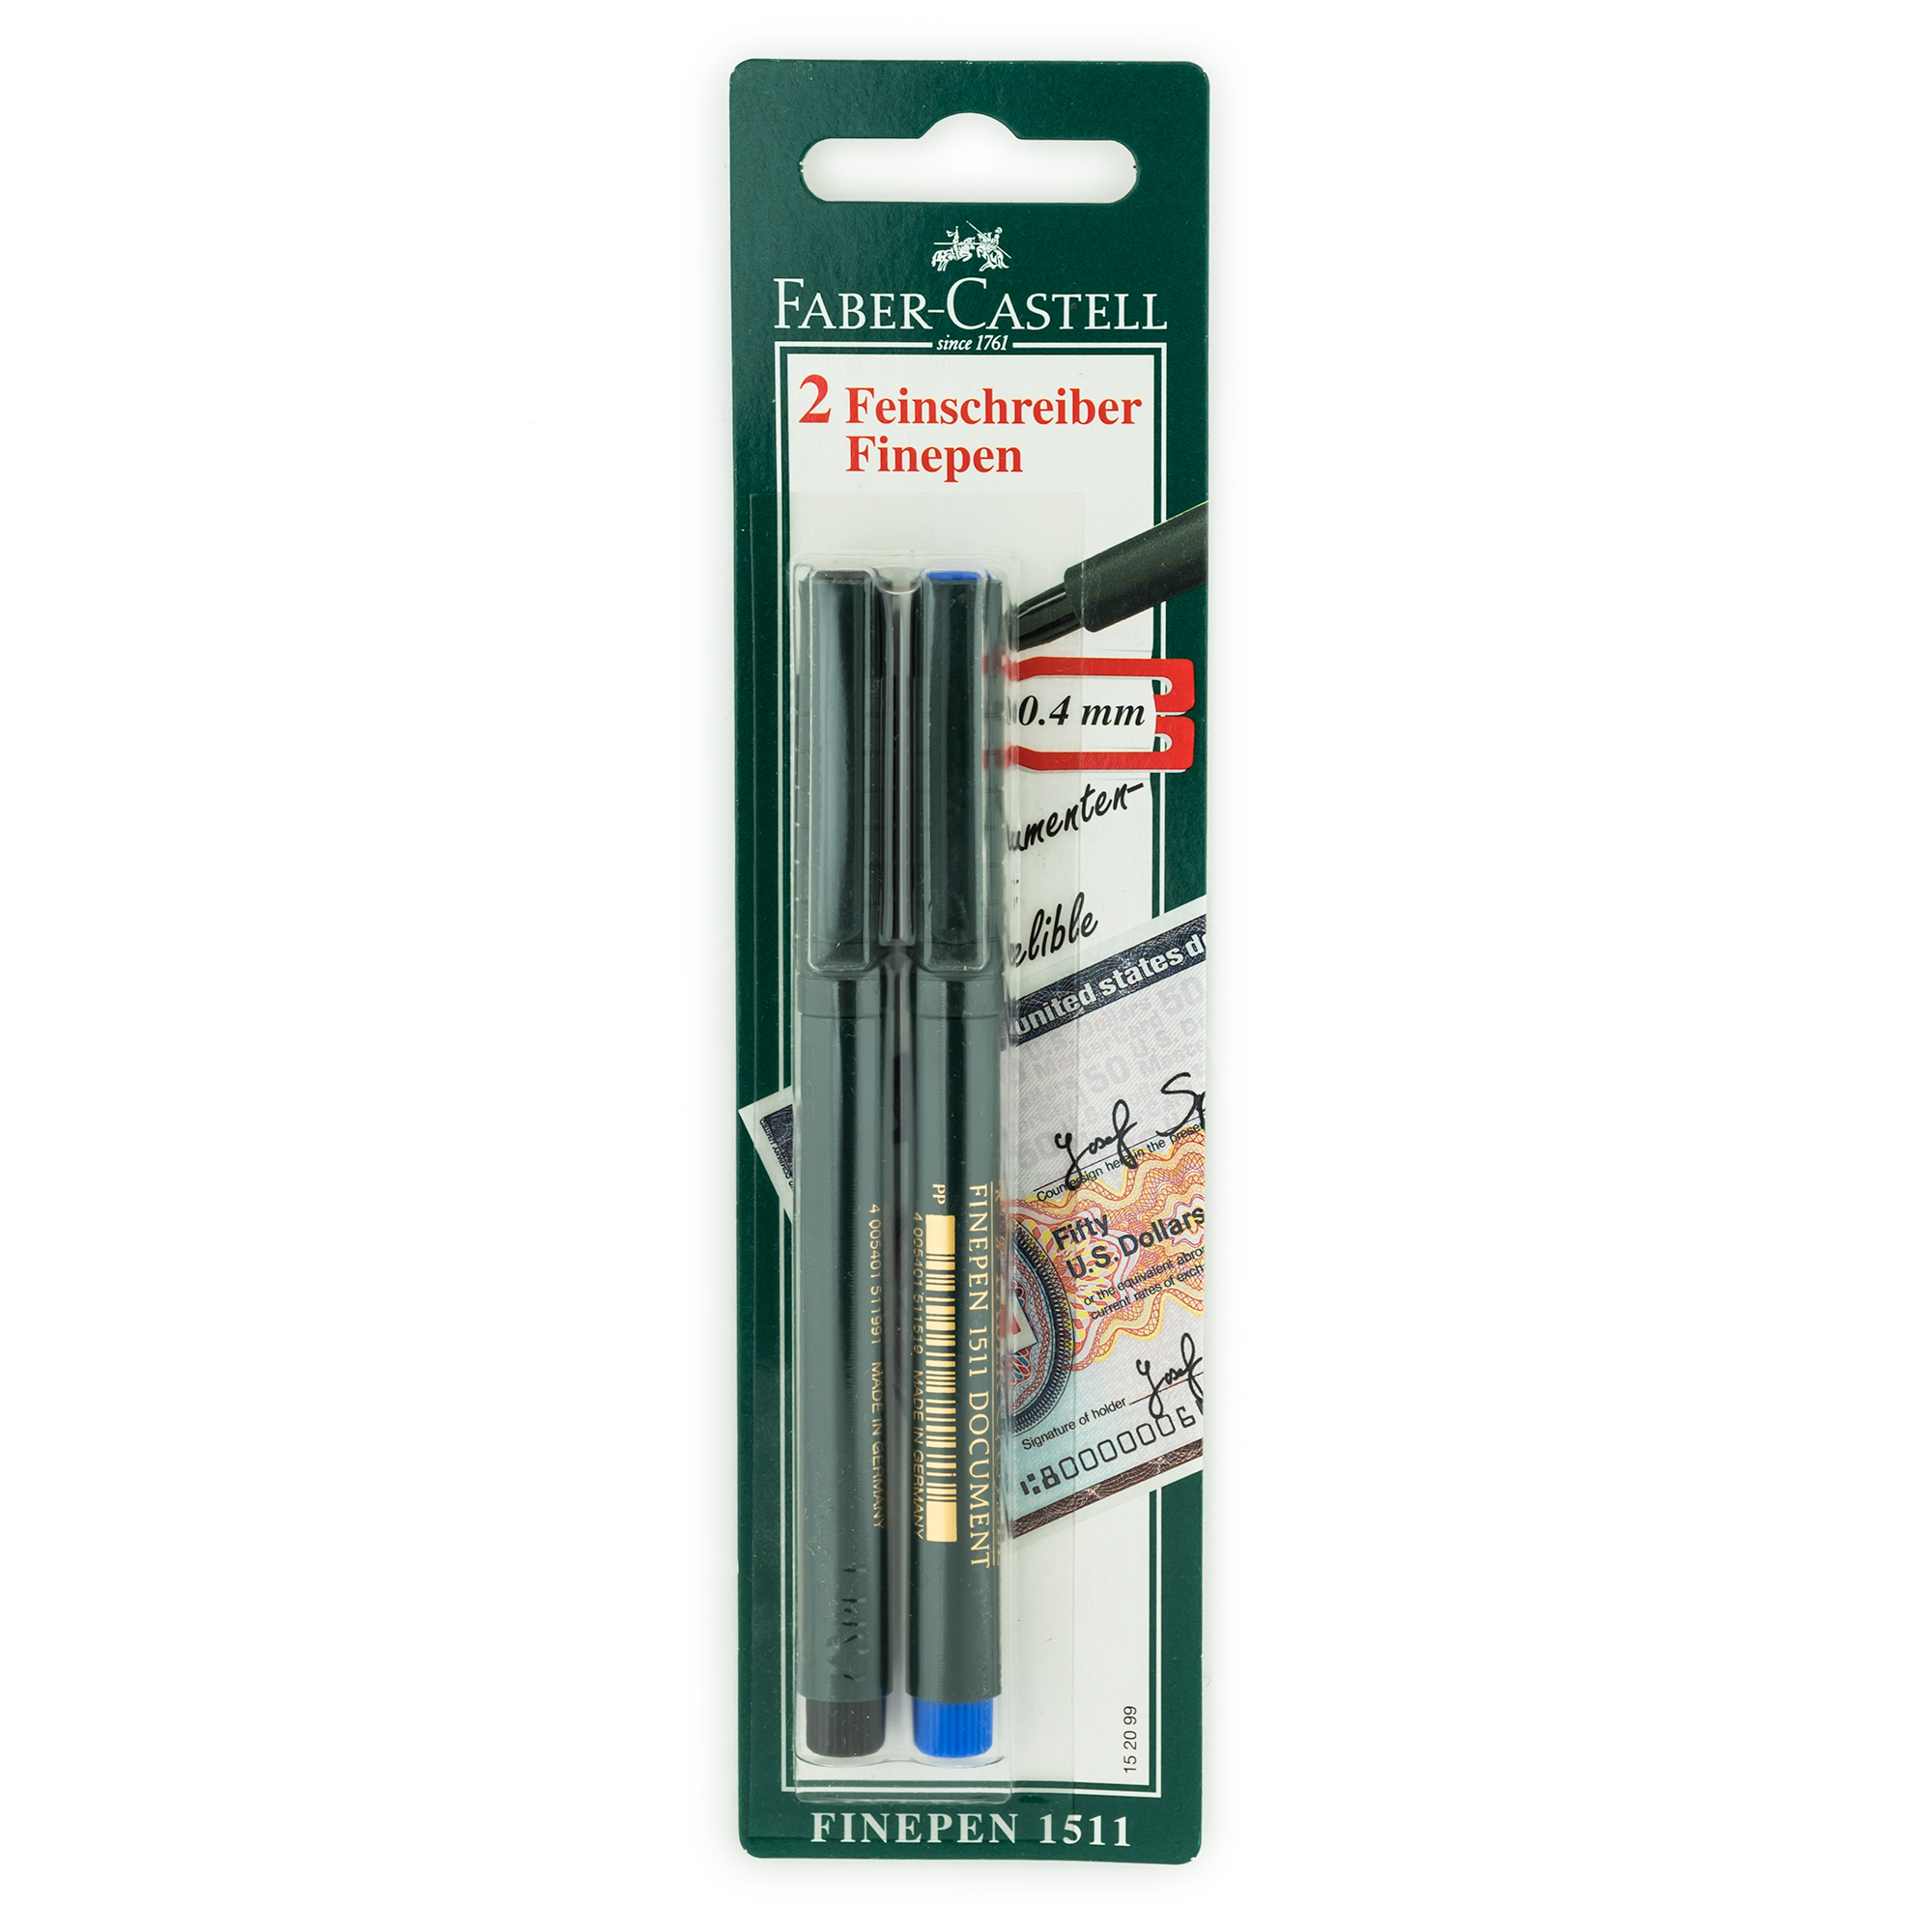 faber castell finepen 1511 blue and black set. Black Bedroom Furniture Sets. Home Design Ideas